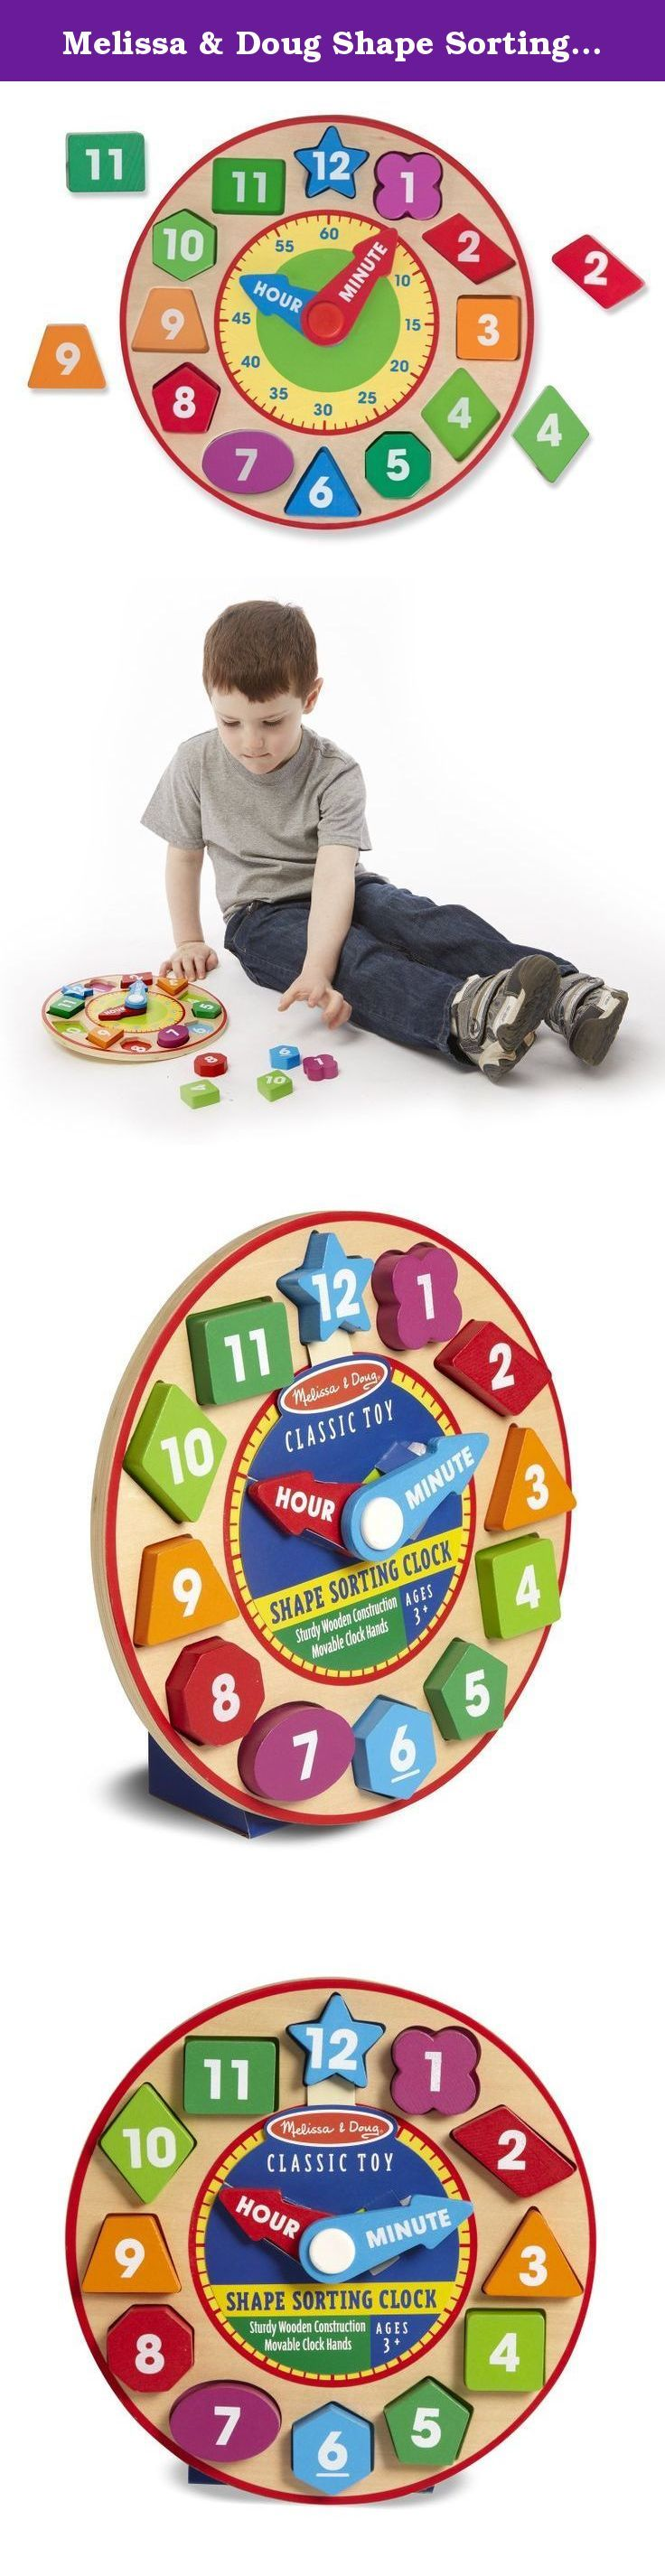 Melissa & Doug Shape Sorting Clock - Wooden Educational Toy. This preschool-friendly clock features color-coded minute and hour hands that spin around with a simple push . . . but no matter where they point, it's always time for learning and fun! Kids can match the colors, sort the shapes, and solve the puzzle as they manipulate the color blocks and turn the hands, building cognitive and motor skills all the while. Extension activities printed right on the box encourage parent-and-child…